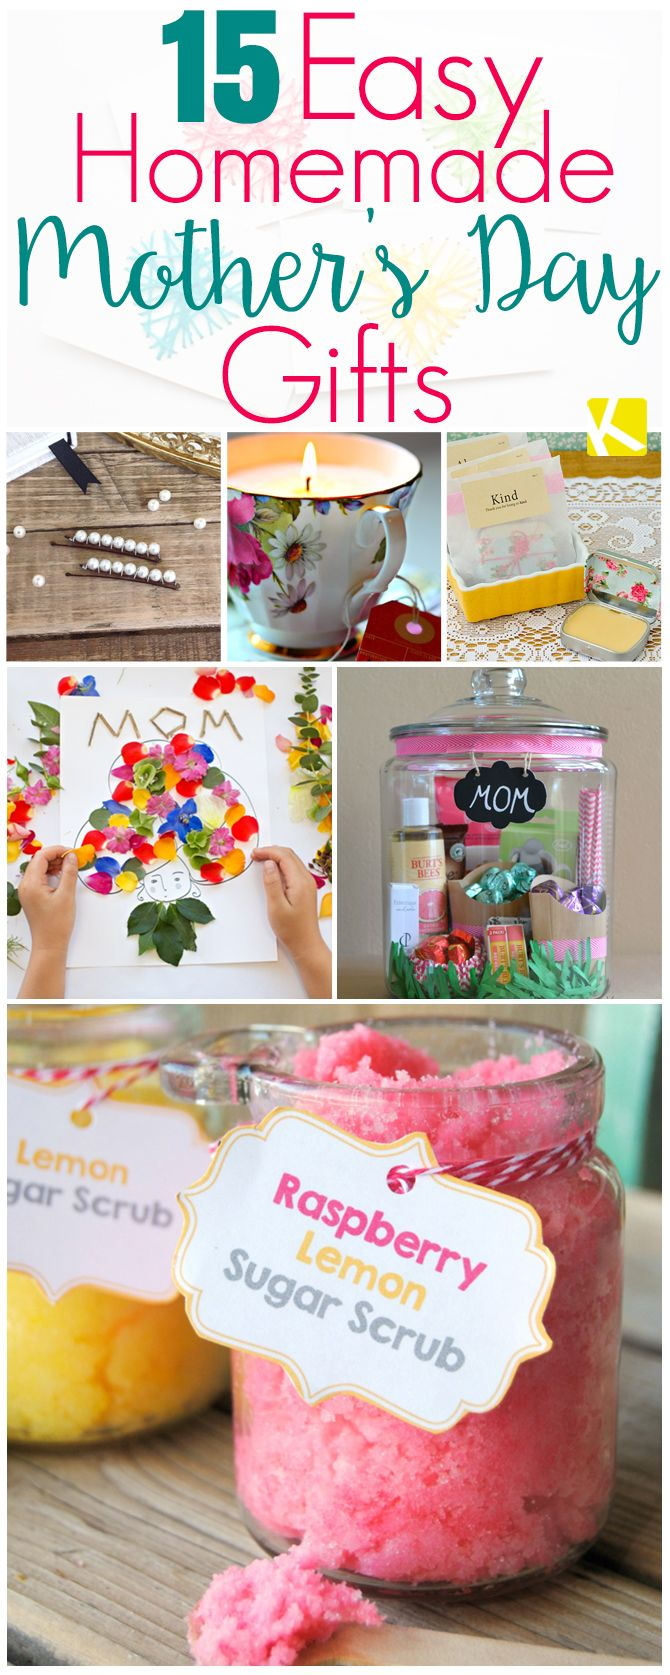 15 mother s day gifts that are ridiculously easy to make On homemade crafts for mom